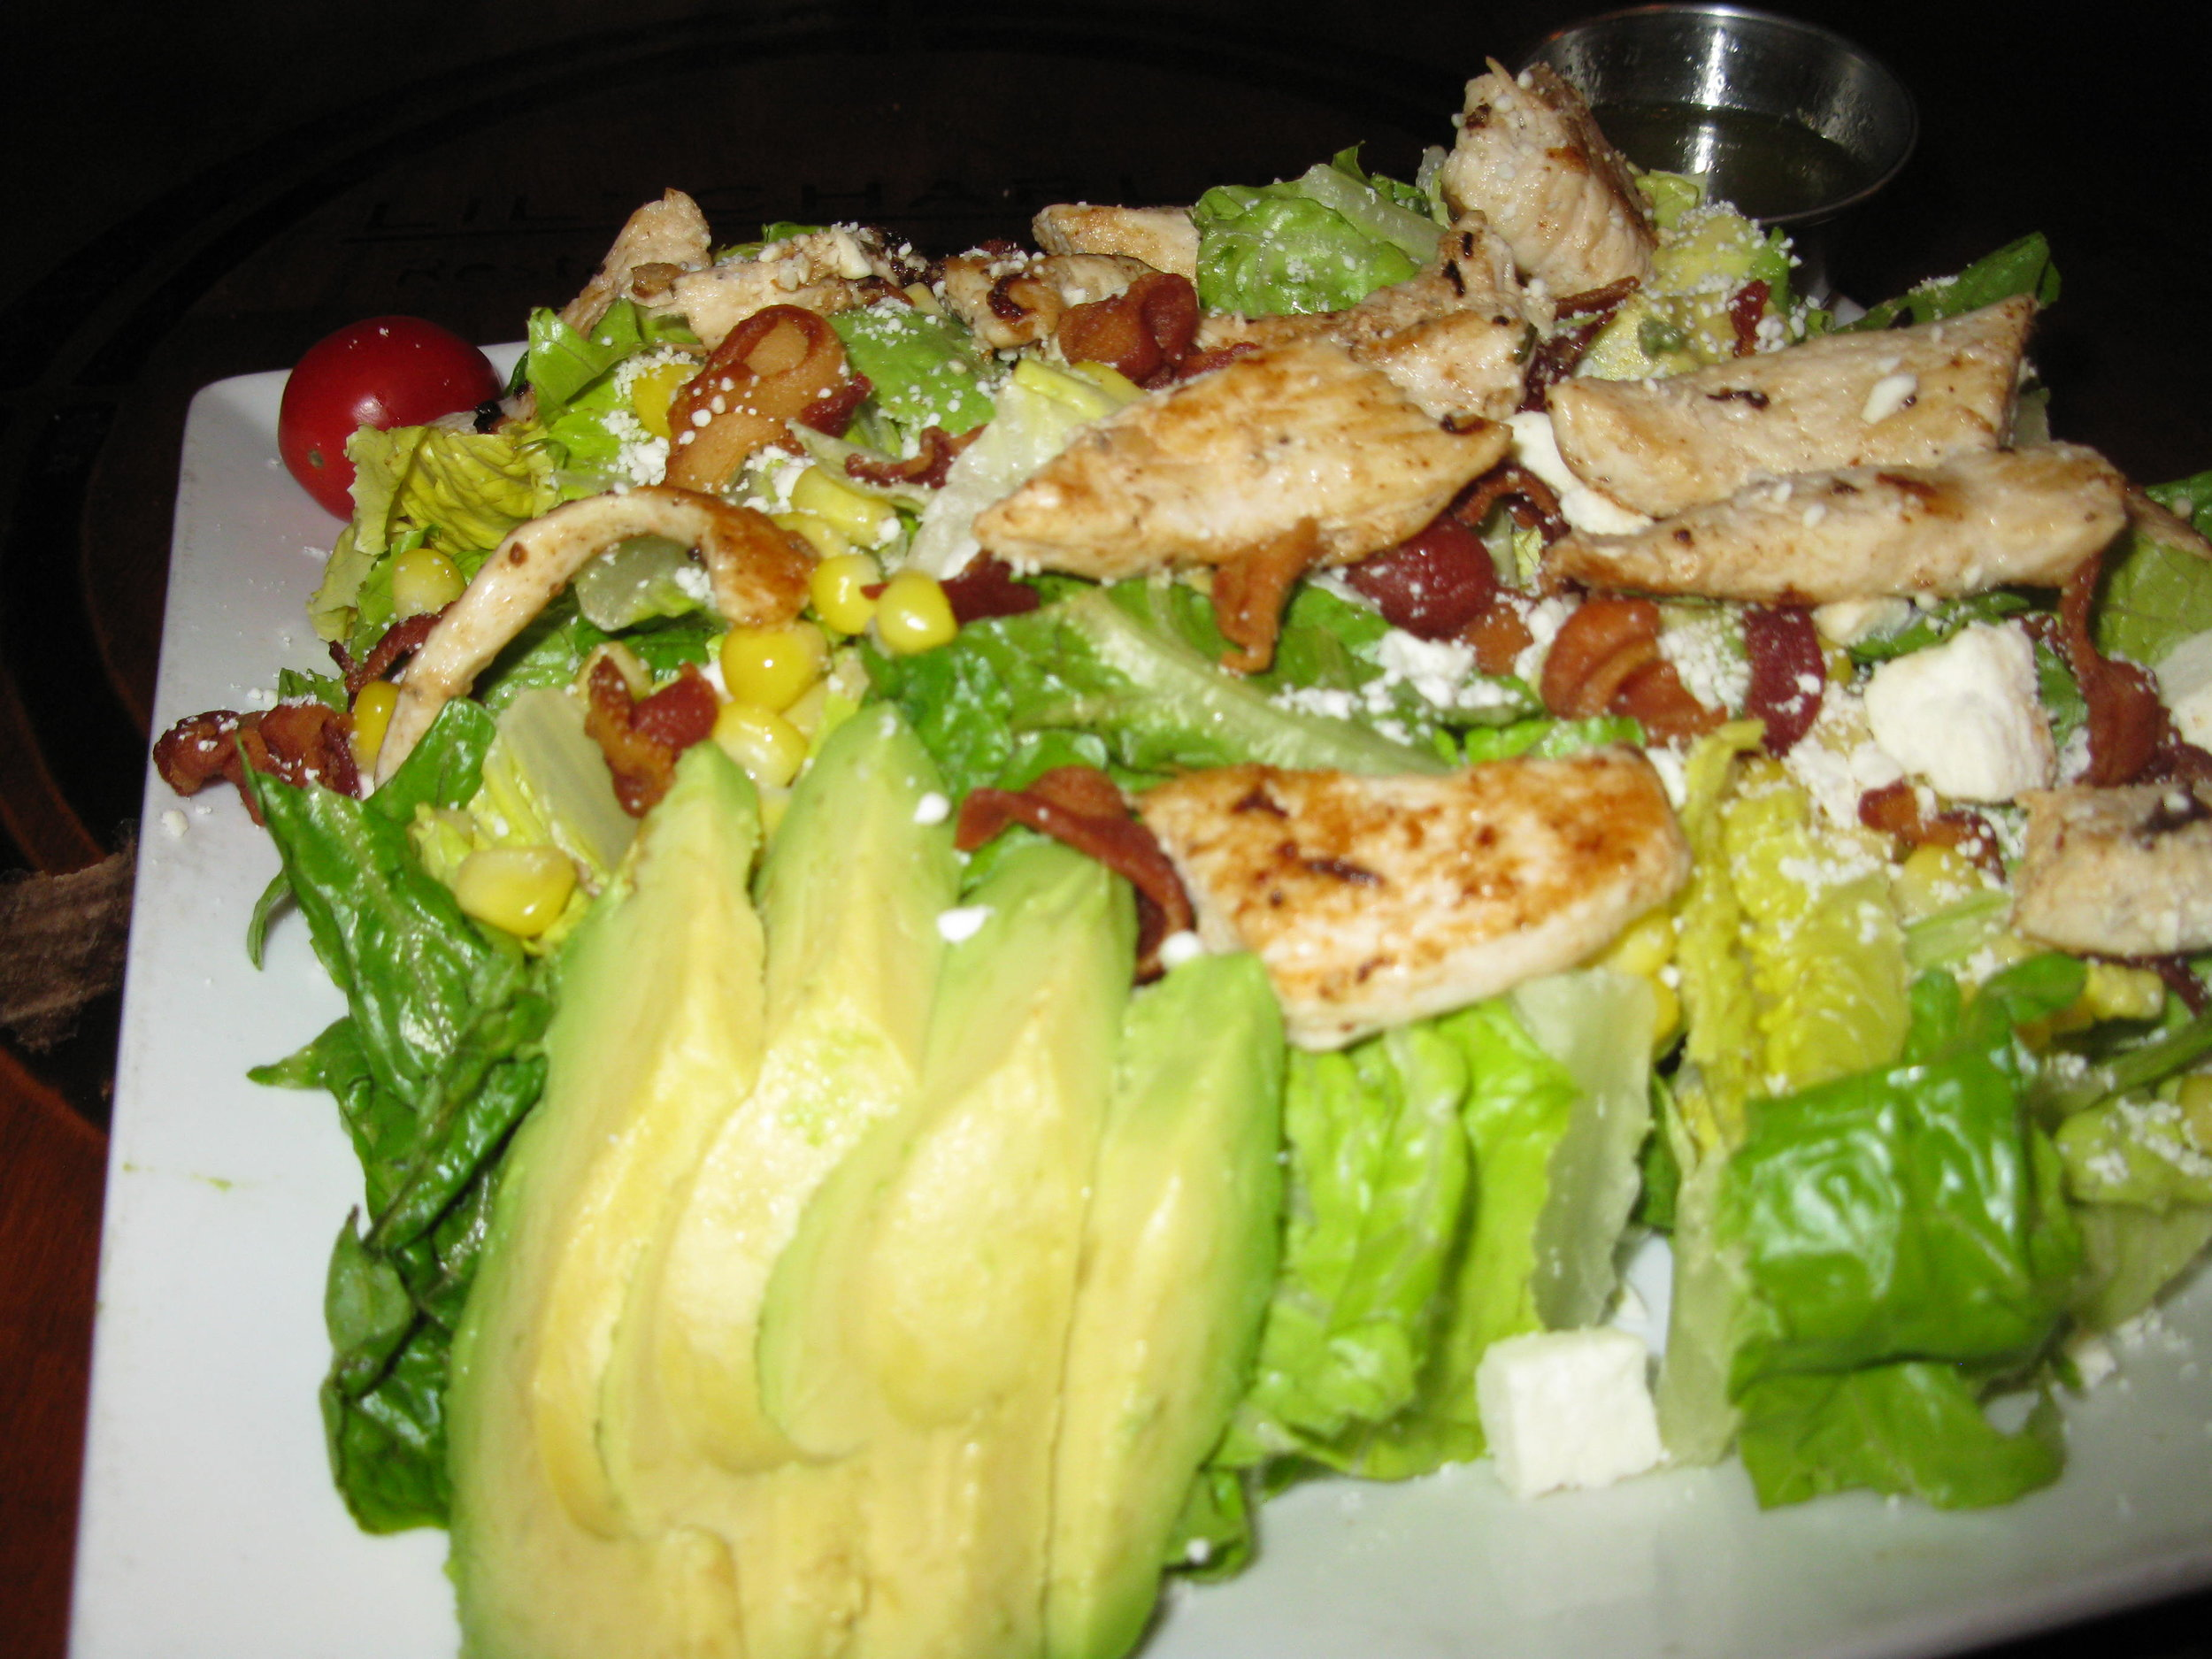 LC's Summer Salad - Fresh avocado, grilled chicken, feta cheese, crispy bacon, and corn over our refreshing romaine lettuce blend.  Served with a house made lime vinaigrette.